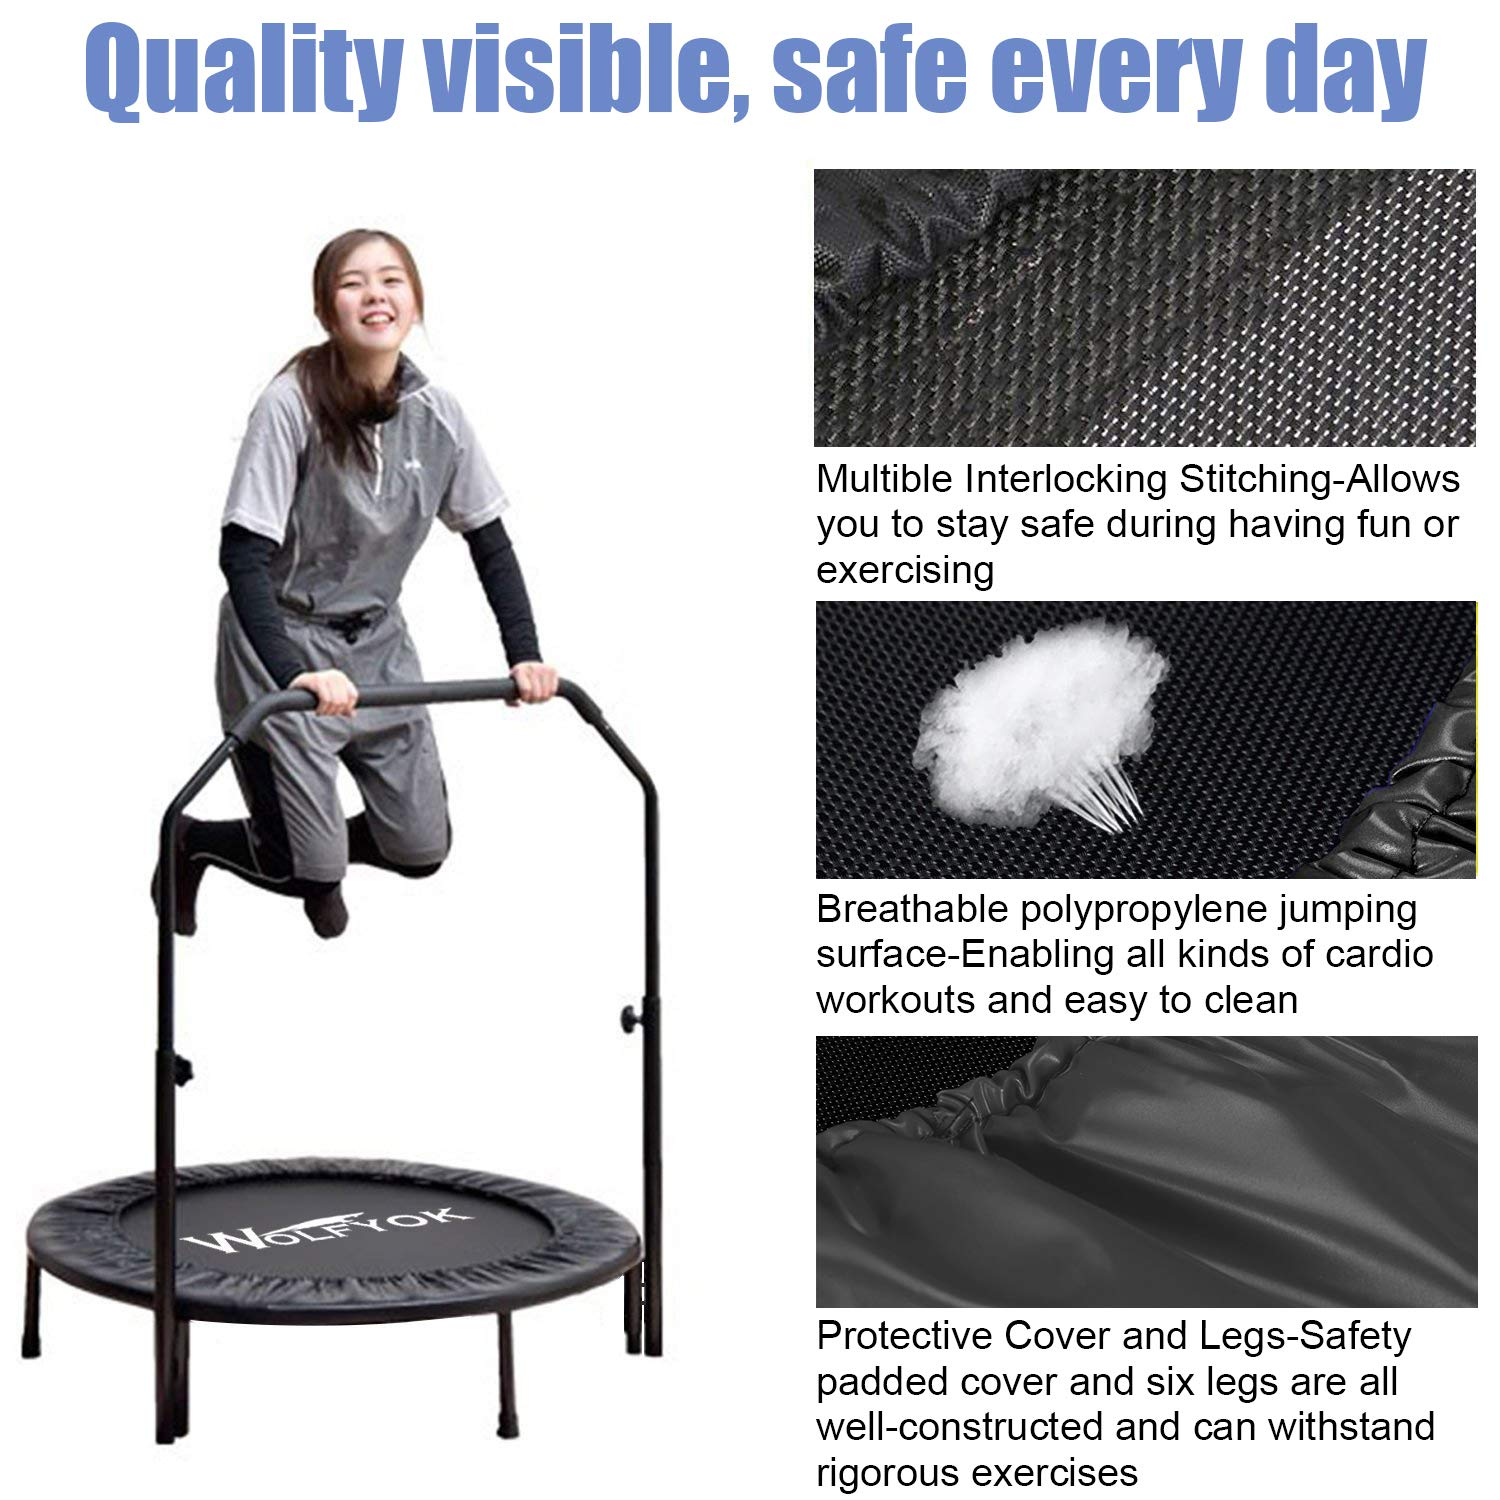 Wolfyok Exercise Trampoline with Safety Pad Adjustable Handle Bar Portable & Foldable Rebounder for Adults Kids Body Fitness Training Workout Max Load 220 lbs Black by Wolfyok (Image #2)